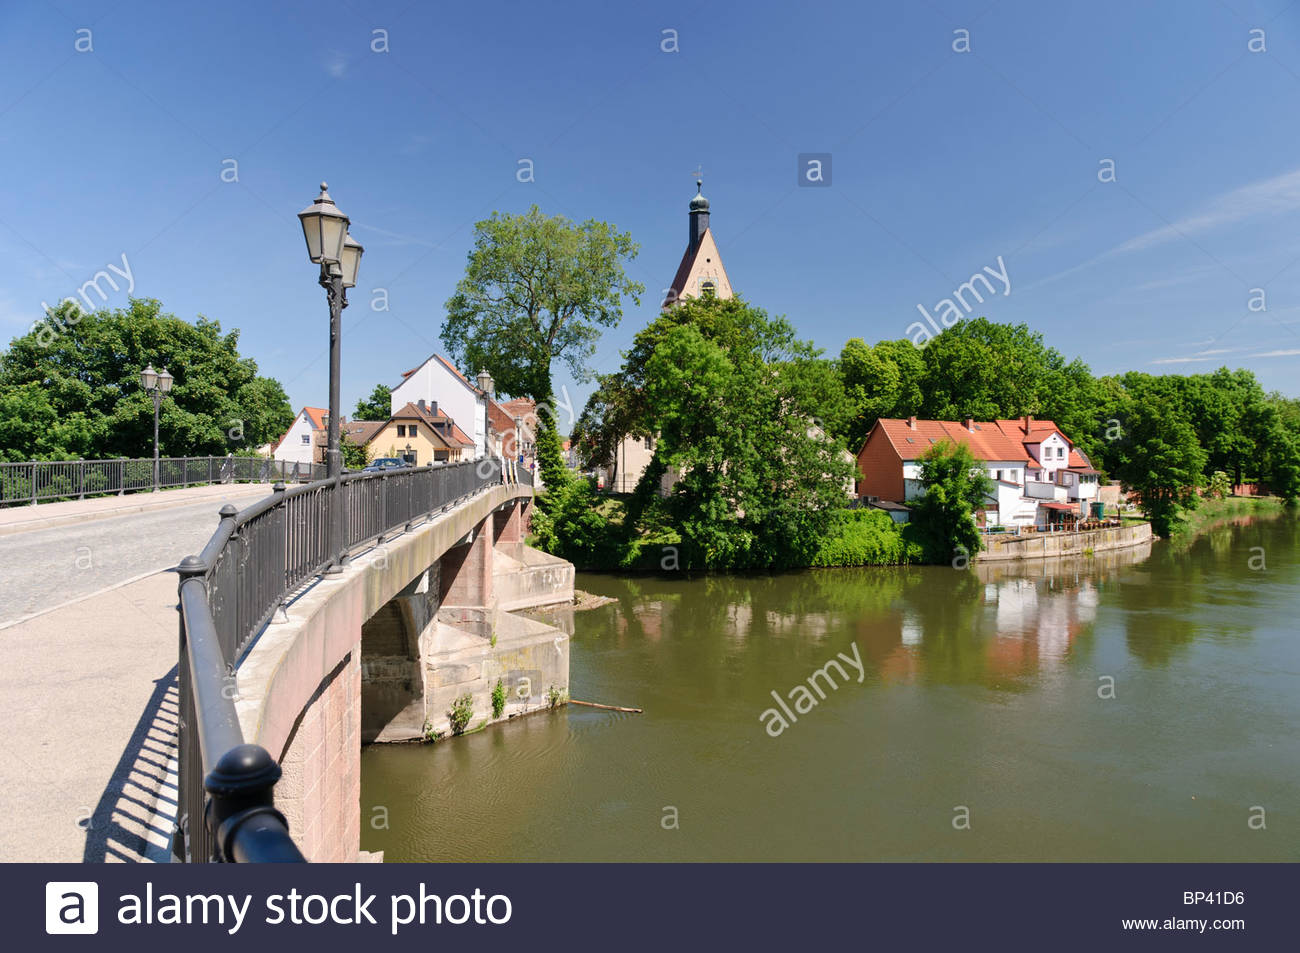 Bridge over the Saale river, Merseburg, Saxony-Anhalt, Germany, Europa - Stock Image